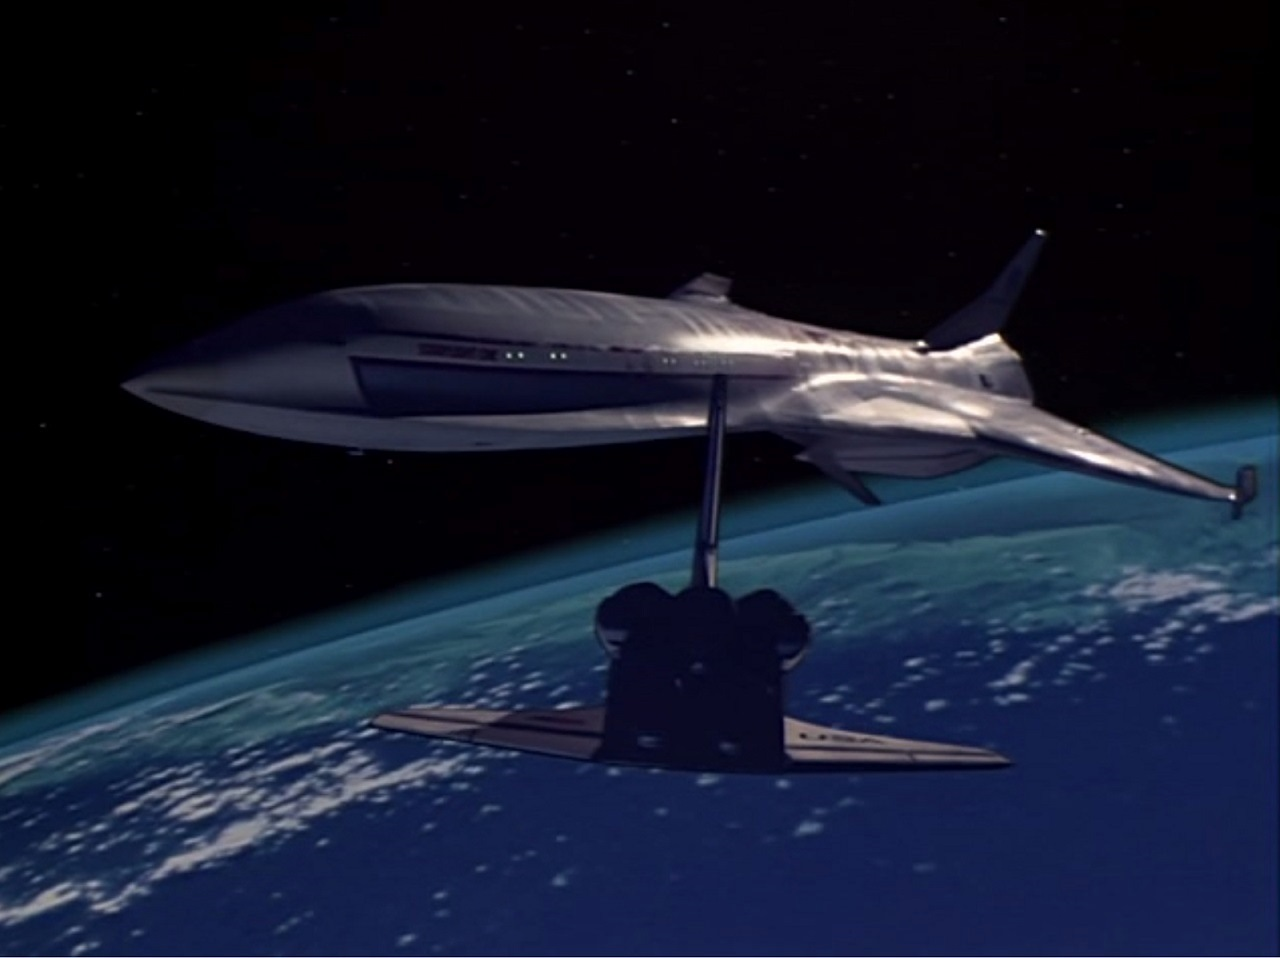 The space shuttle approaches the Starflight 1 in Starflight One (1983)